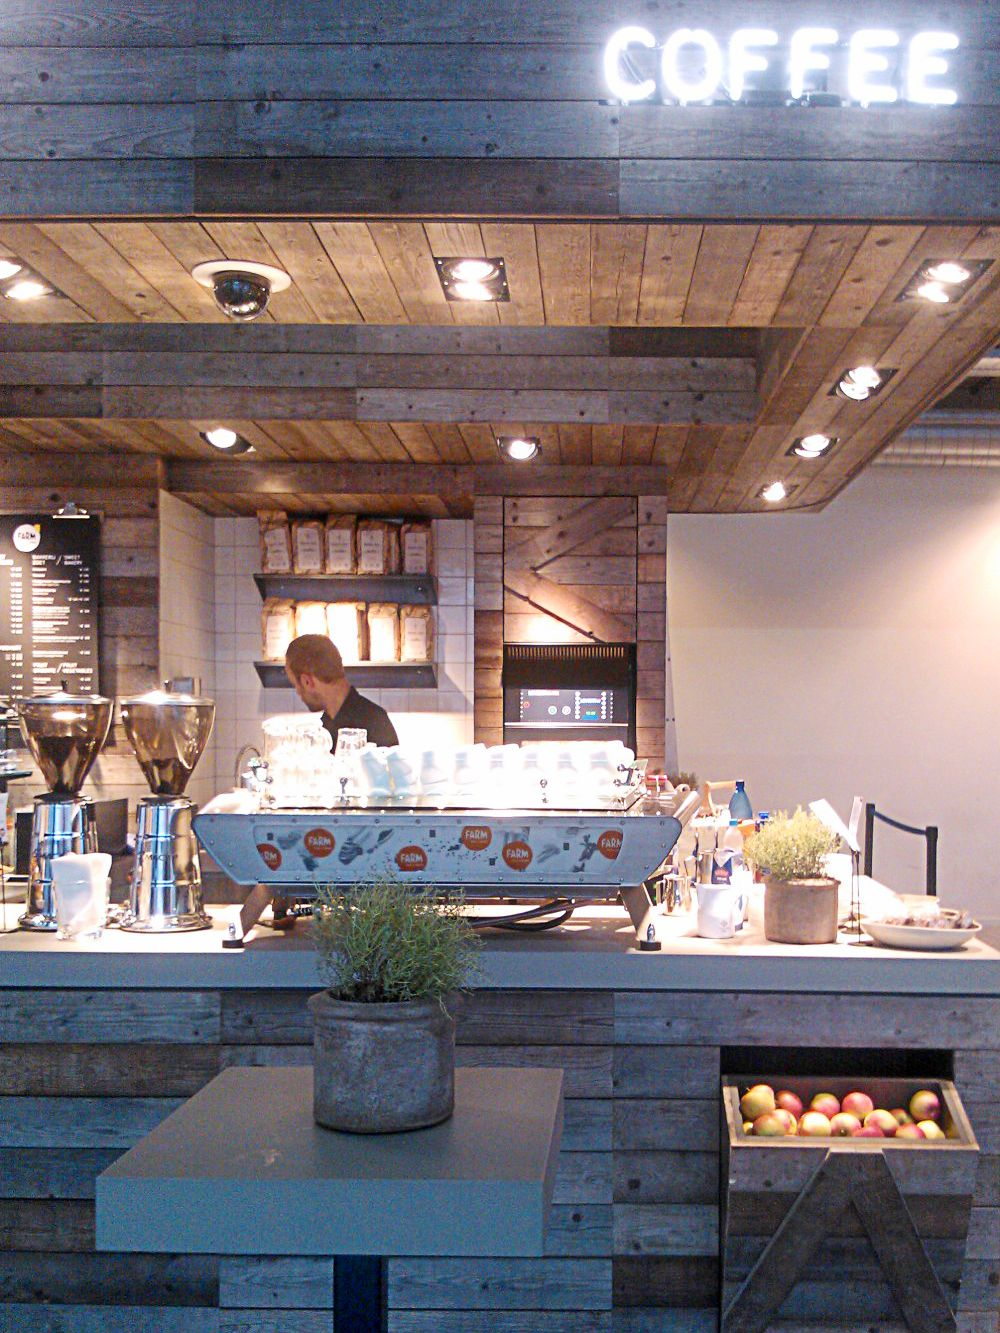 Pin By Mikaela Kirby On Cafe Restaurant Interior Coffee Shops Interior Cafe Design Cafe Interior